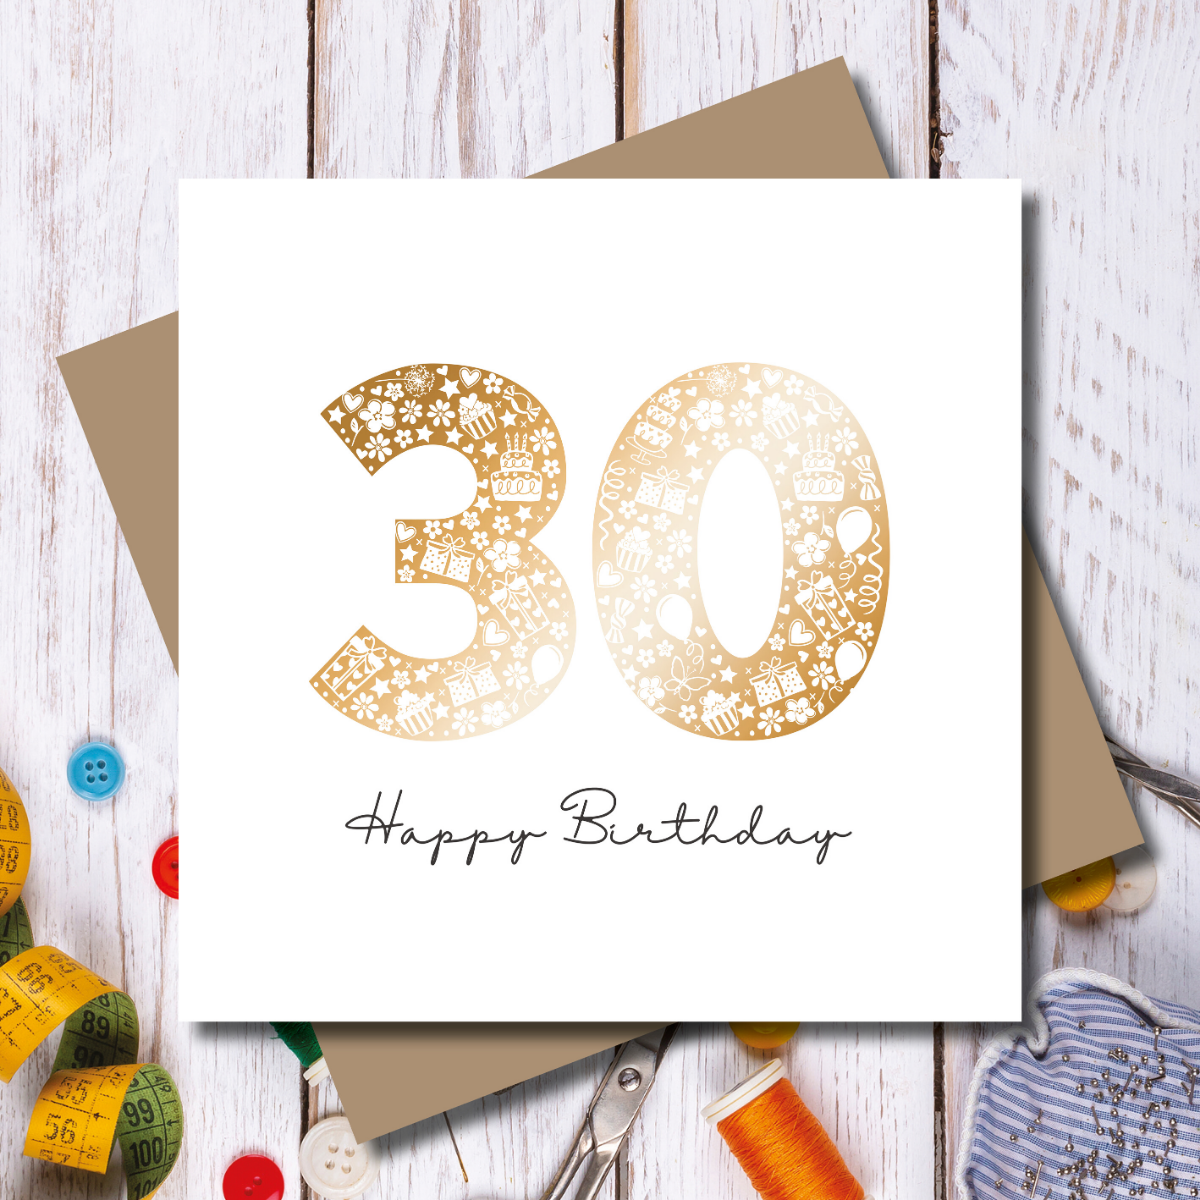 Happy Birthday Card - 30